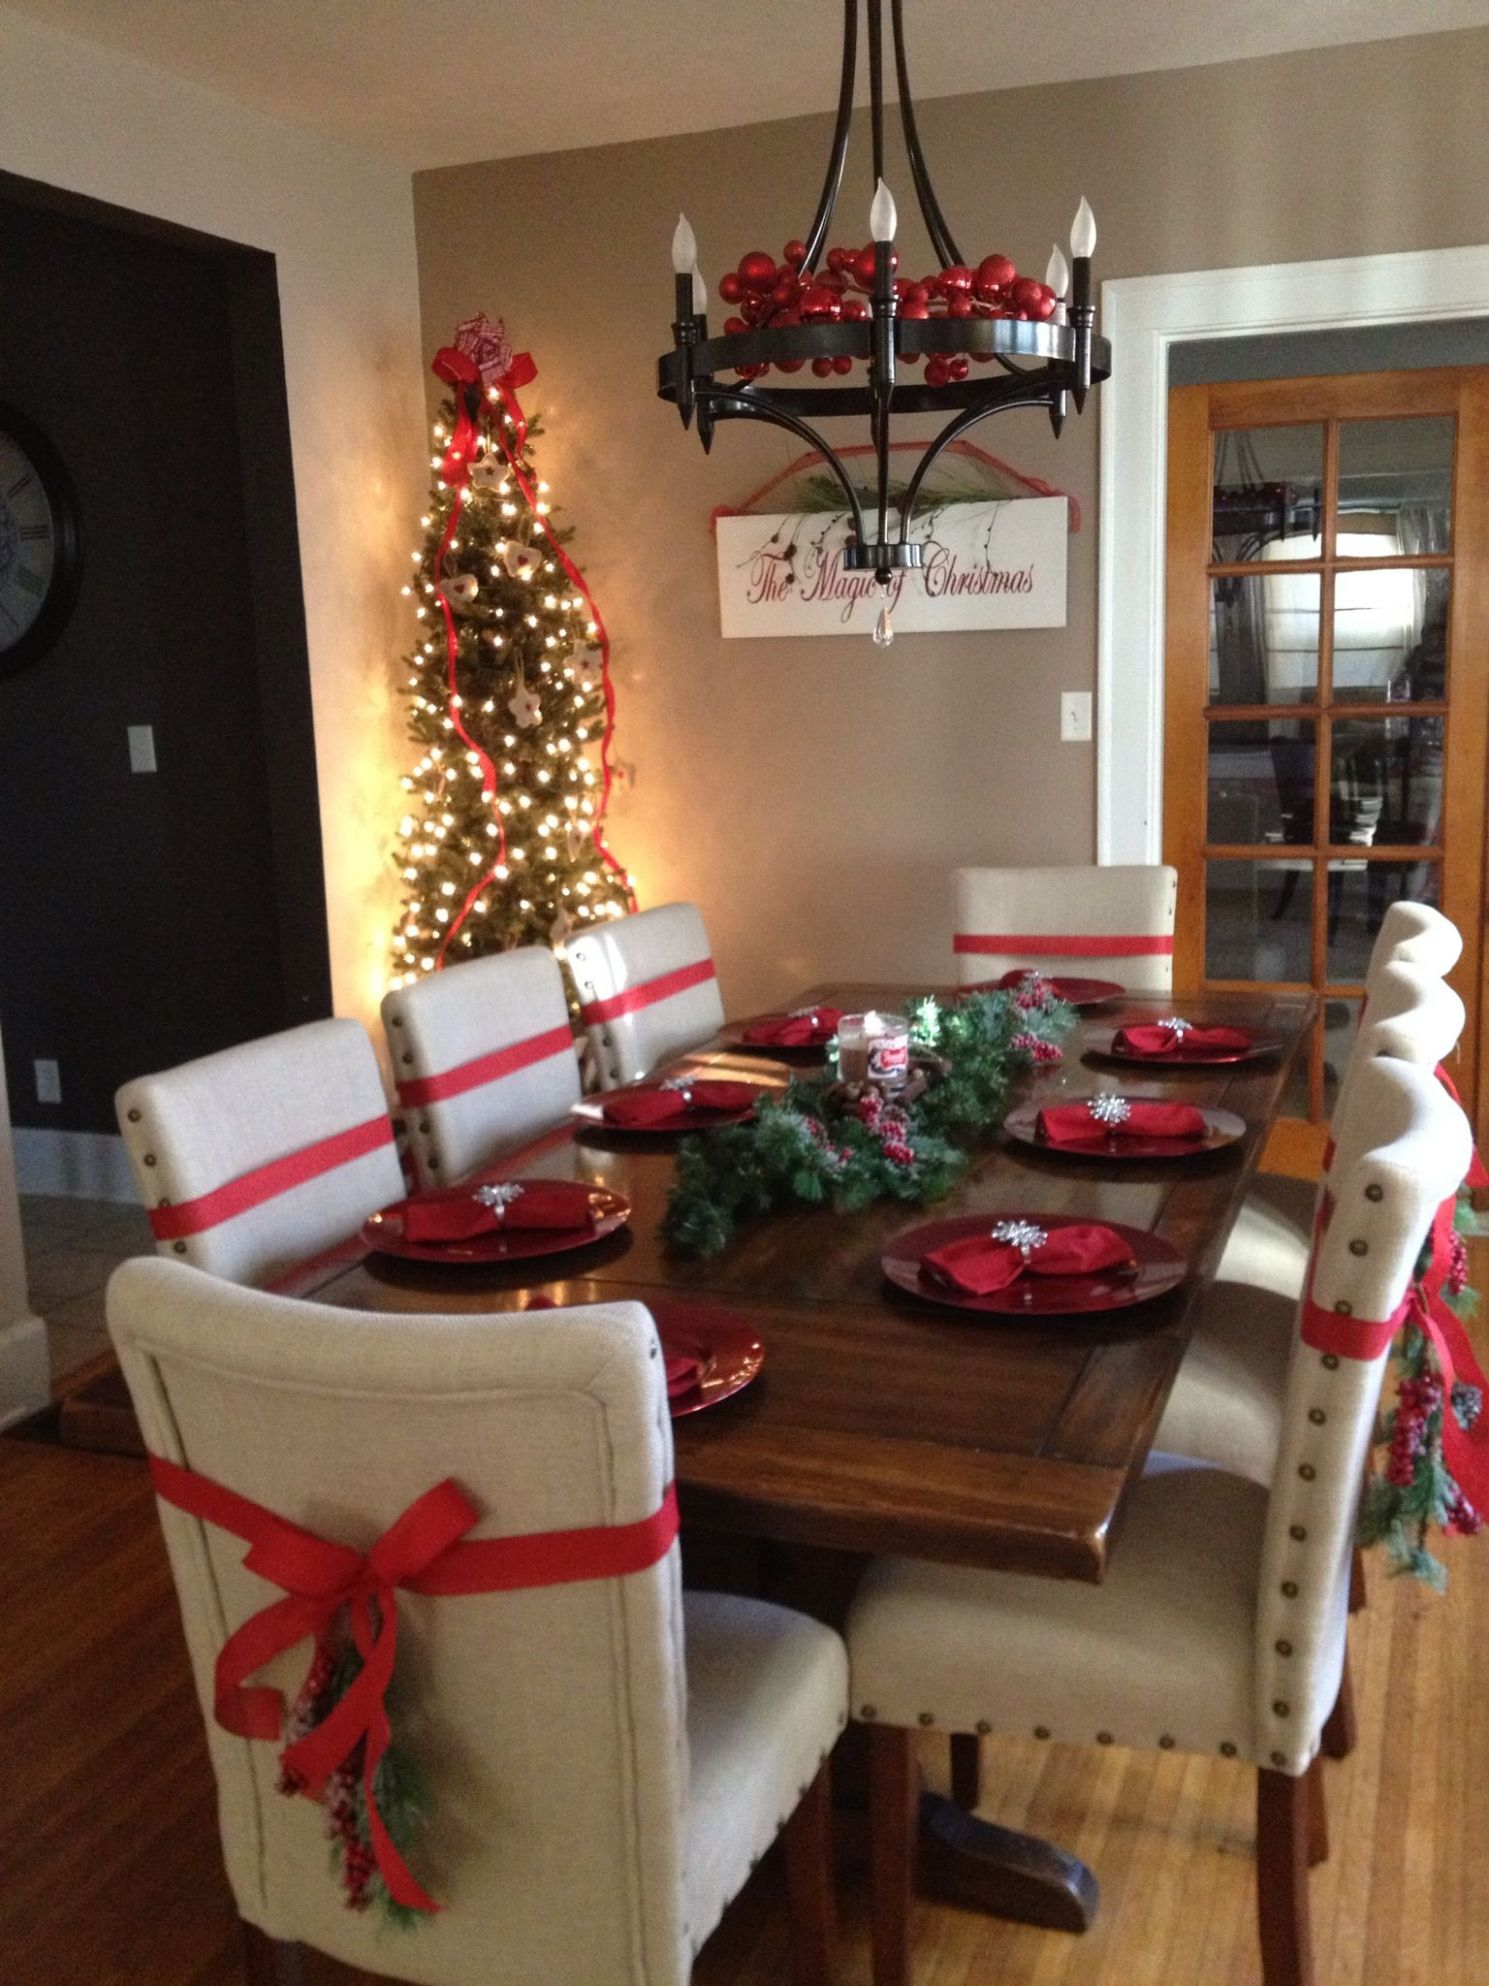 The Best Christmas Decorating Ideas for Your Dining Room Decor ..